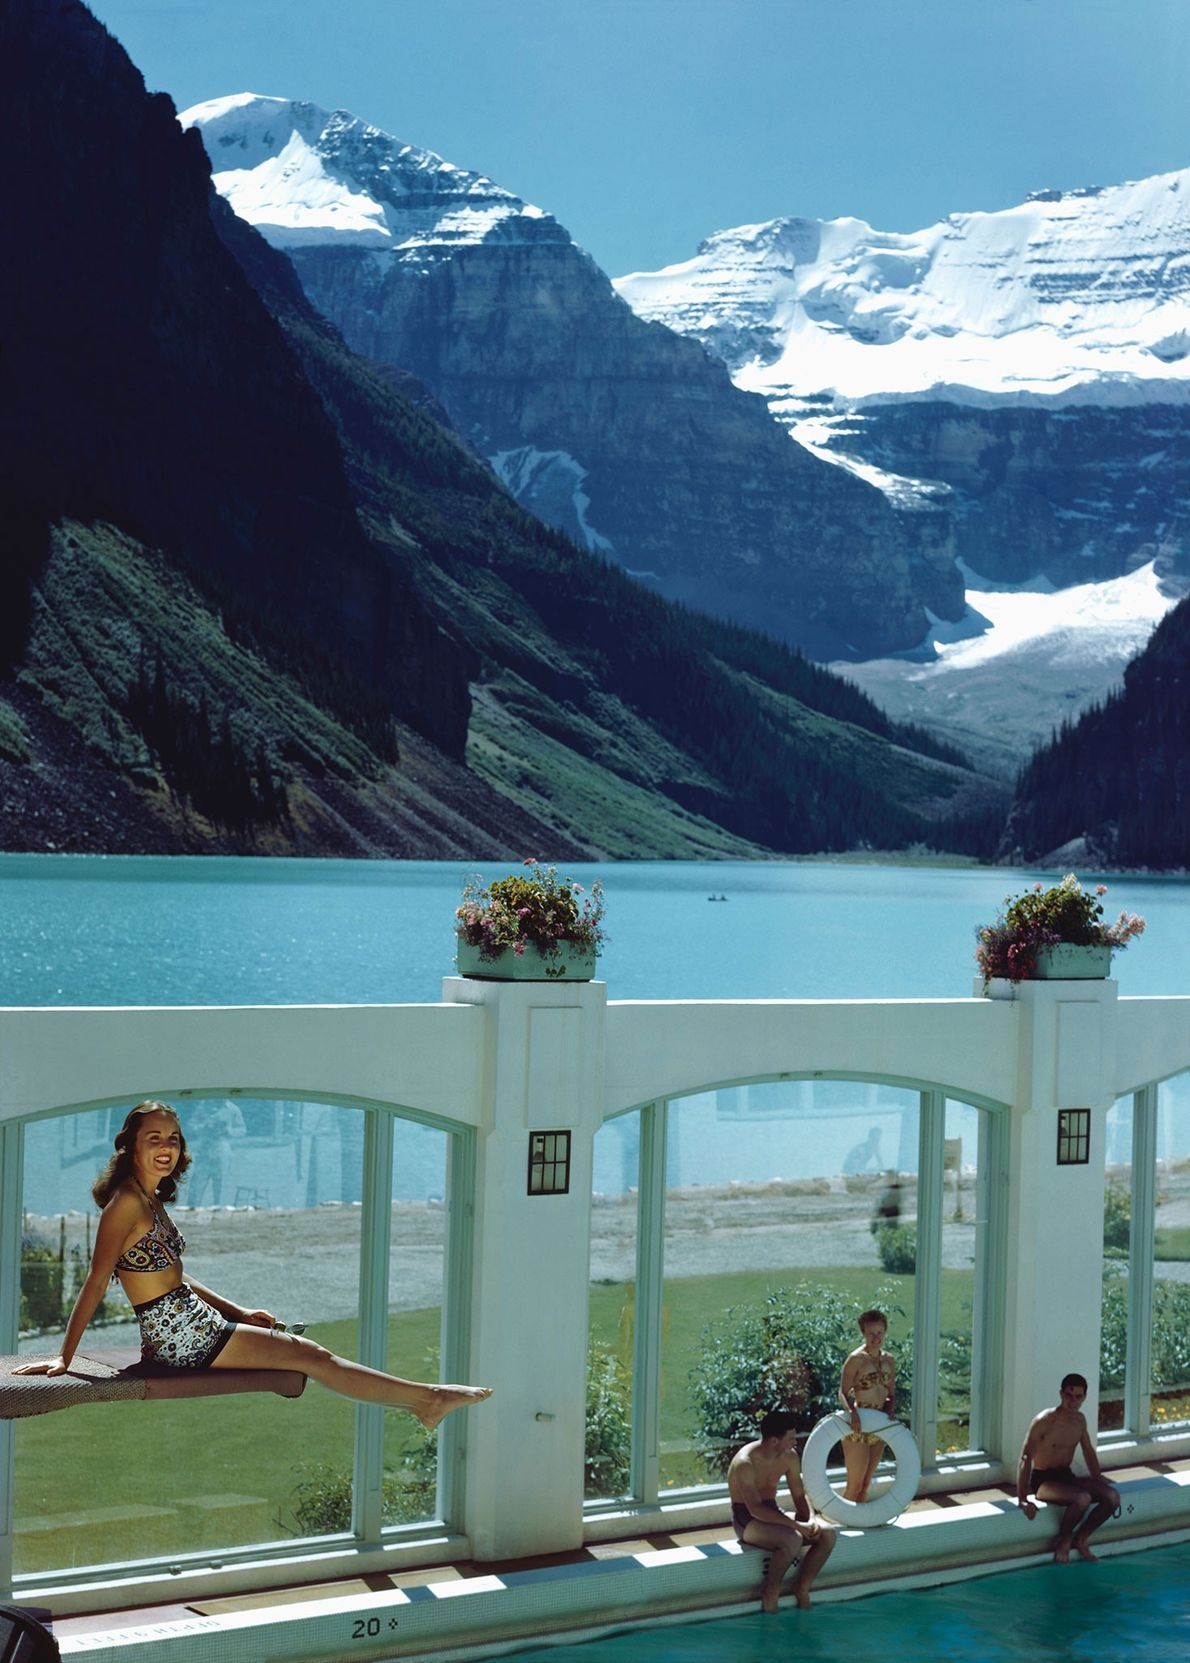 Visitors swim in a pool with a stunning view of the nearby mountains at Chateau Lake ...